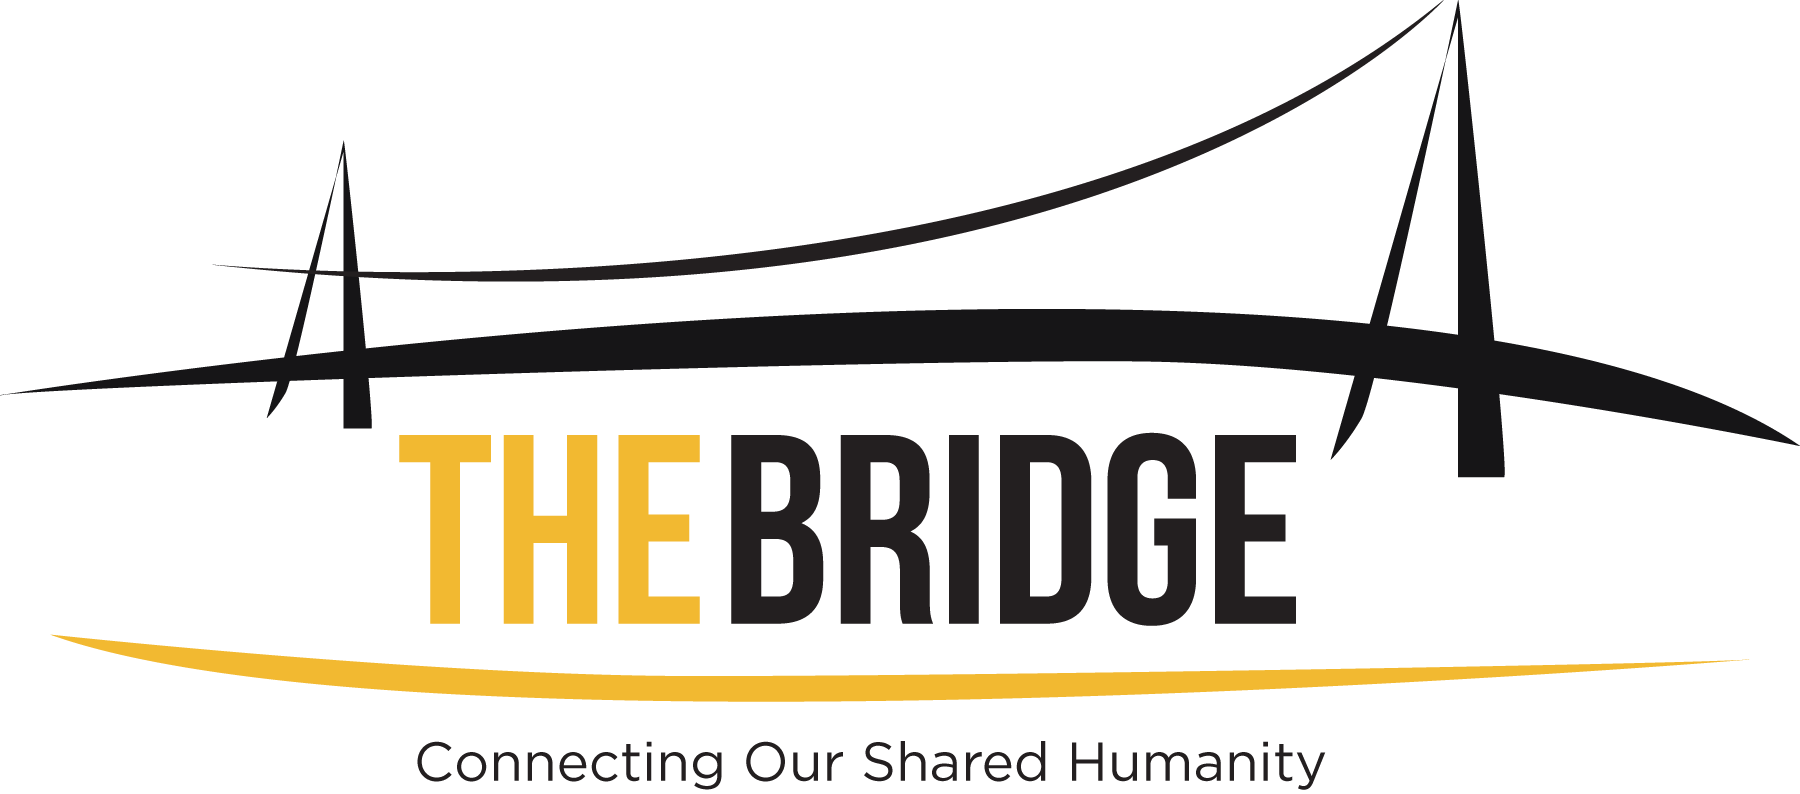 logo The Bridge, Connecting our shared humanity,, 220 Townsend Hall, University of Missouri College of Education